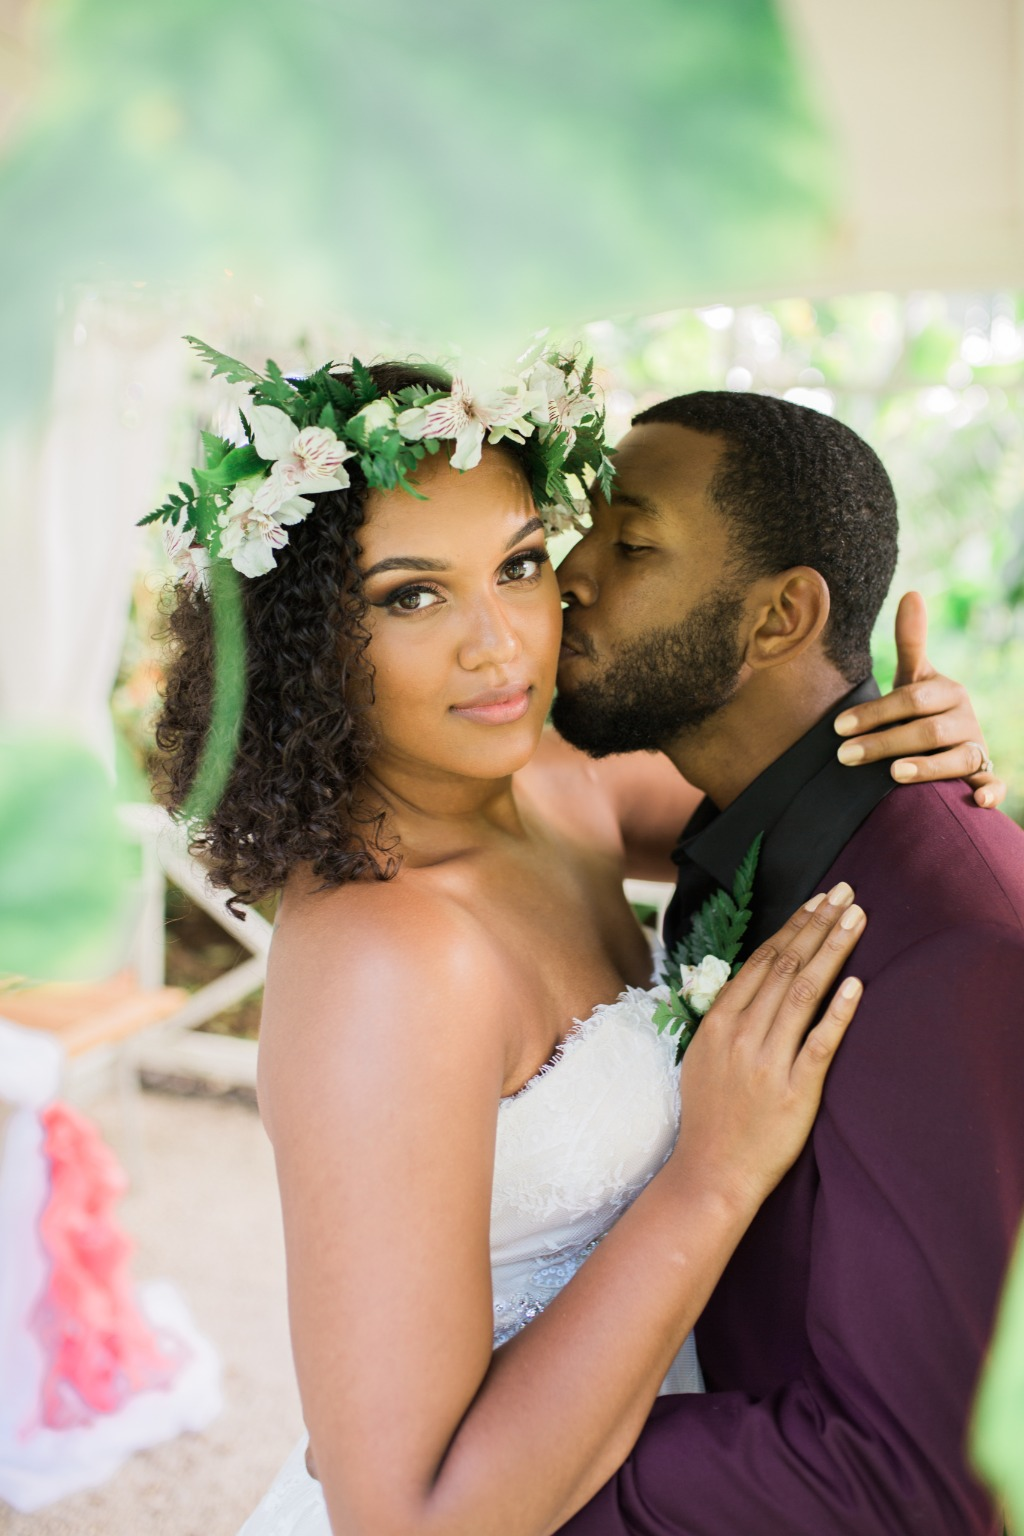 Beautiful wedding Portaits in Hawaii!